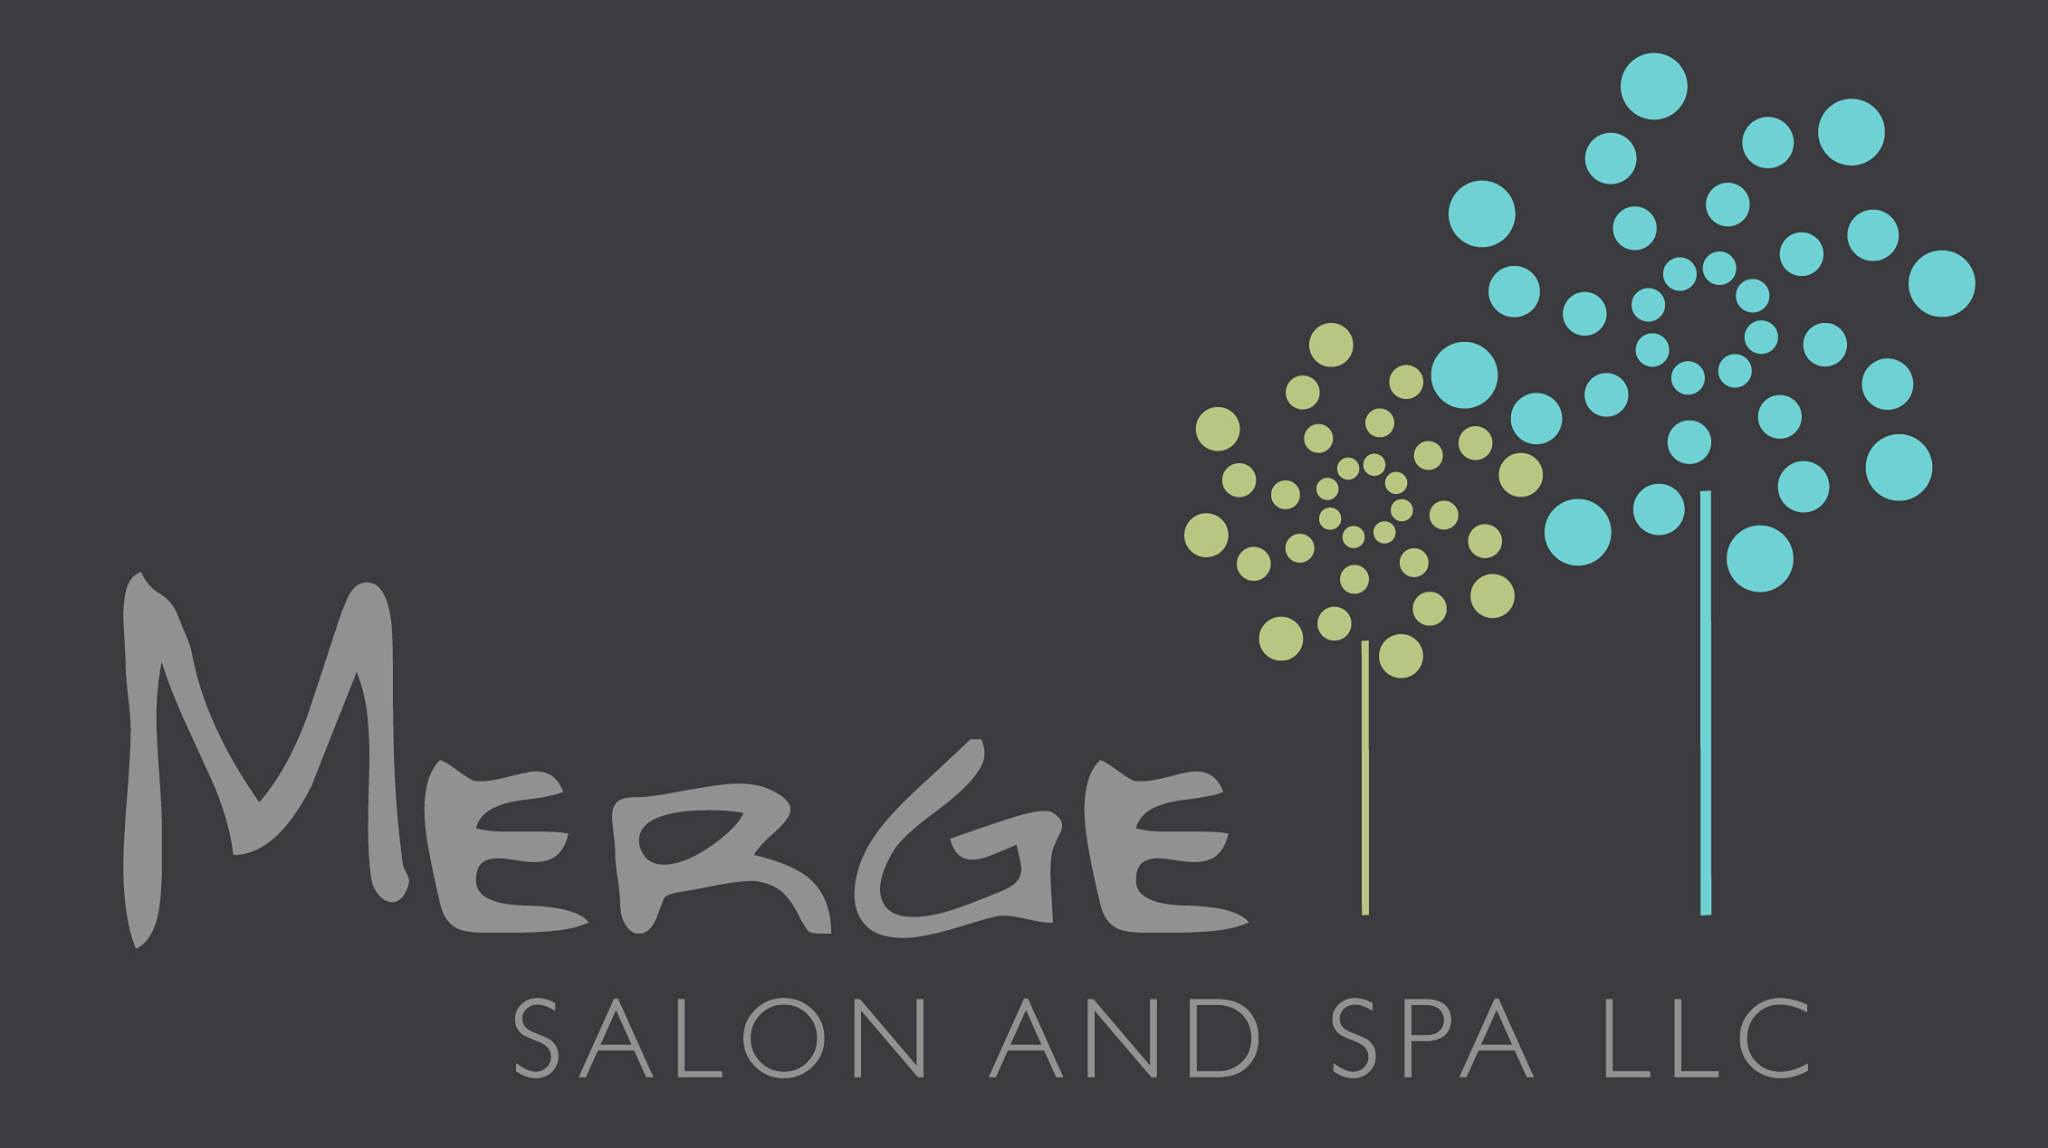 merge-salon.jpg